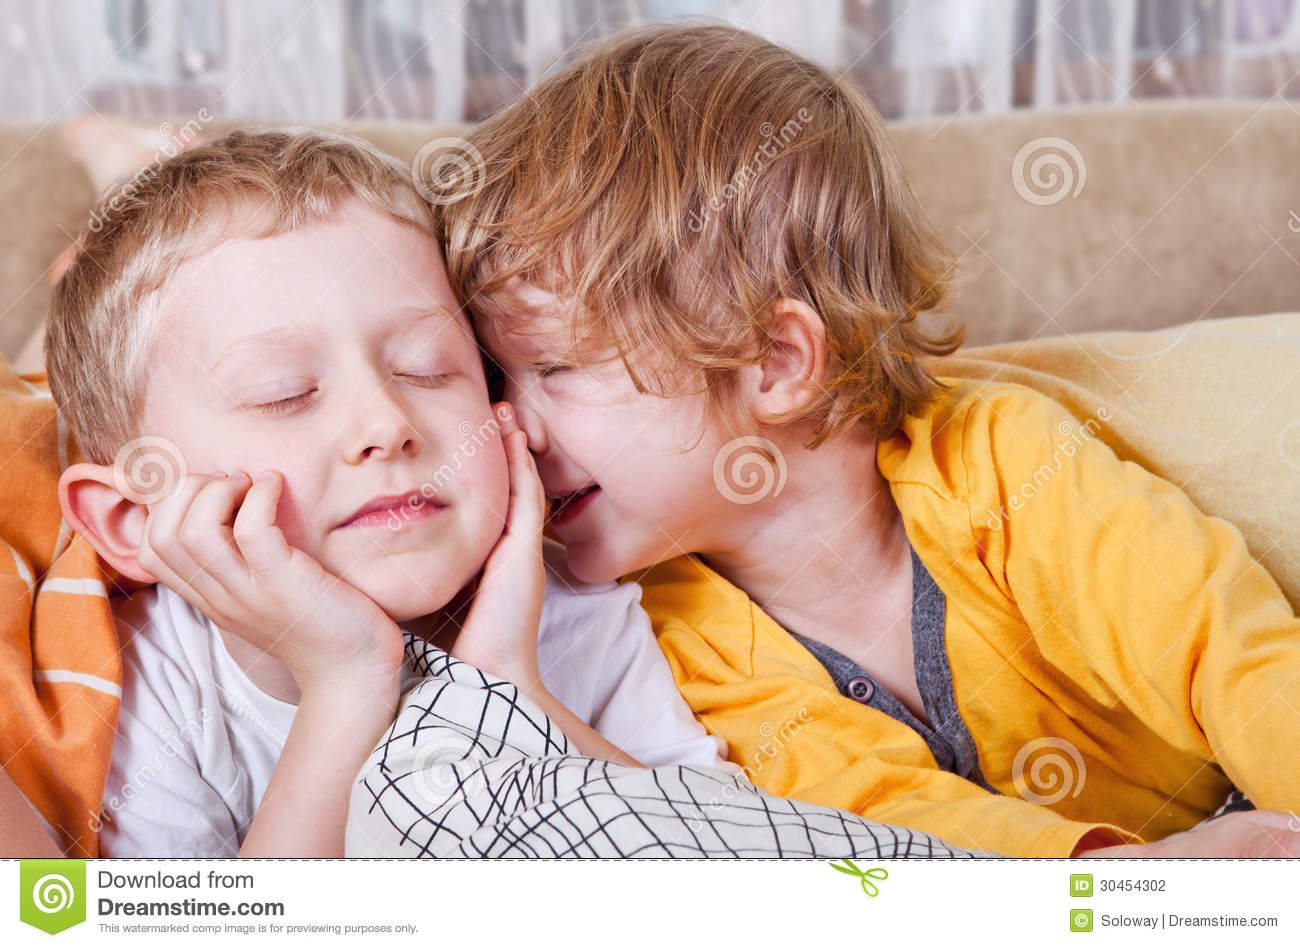 Good Morning Stock Photo Image Of Hugging Little Kiss 30454302